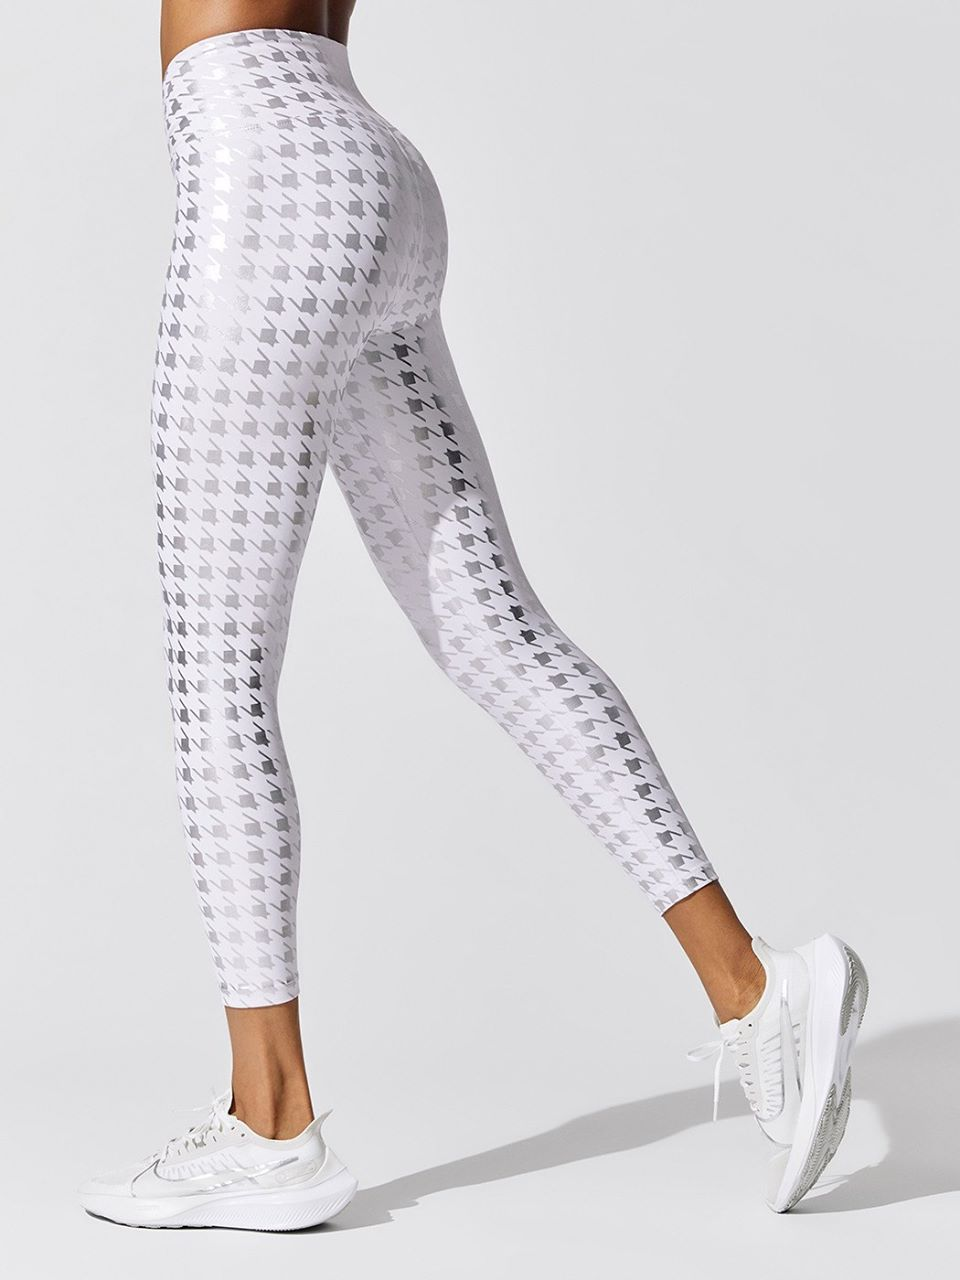 Year Of Ours Disco Veronica Legging